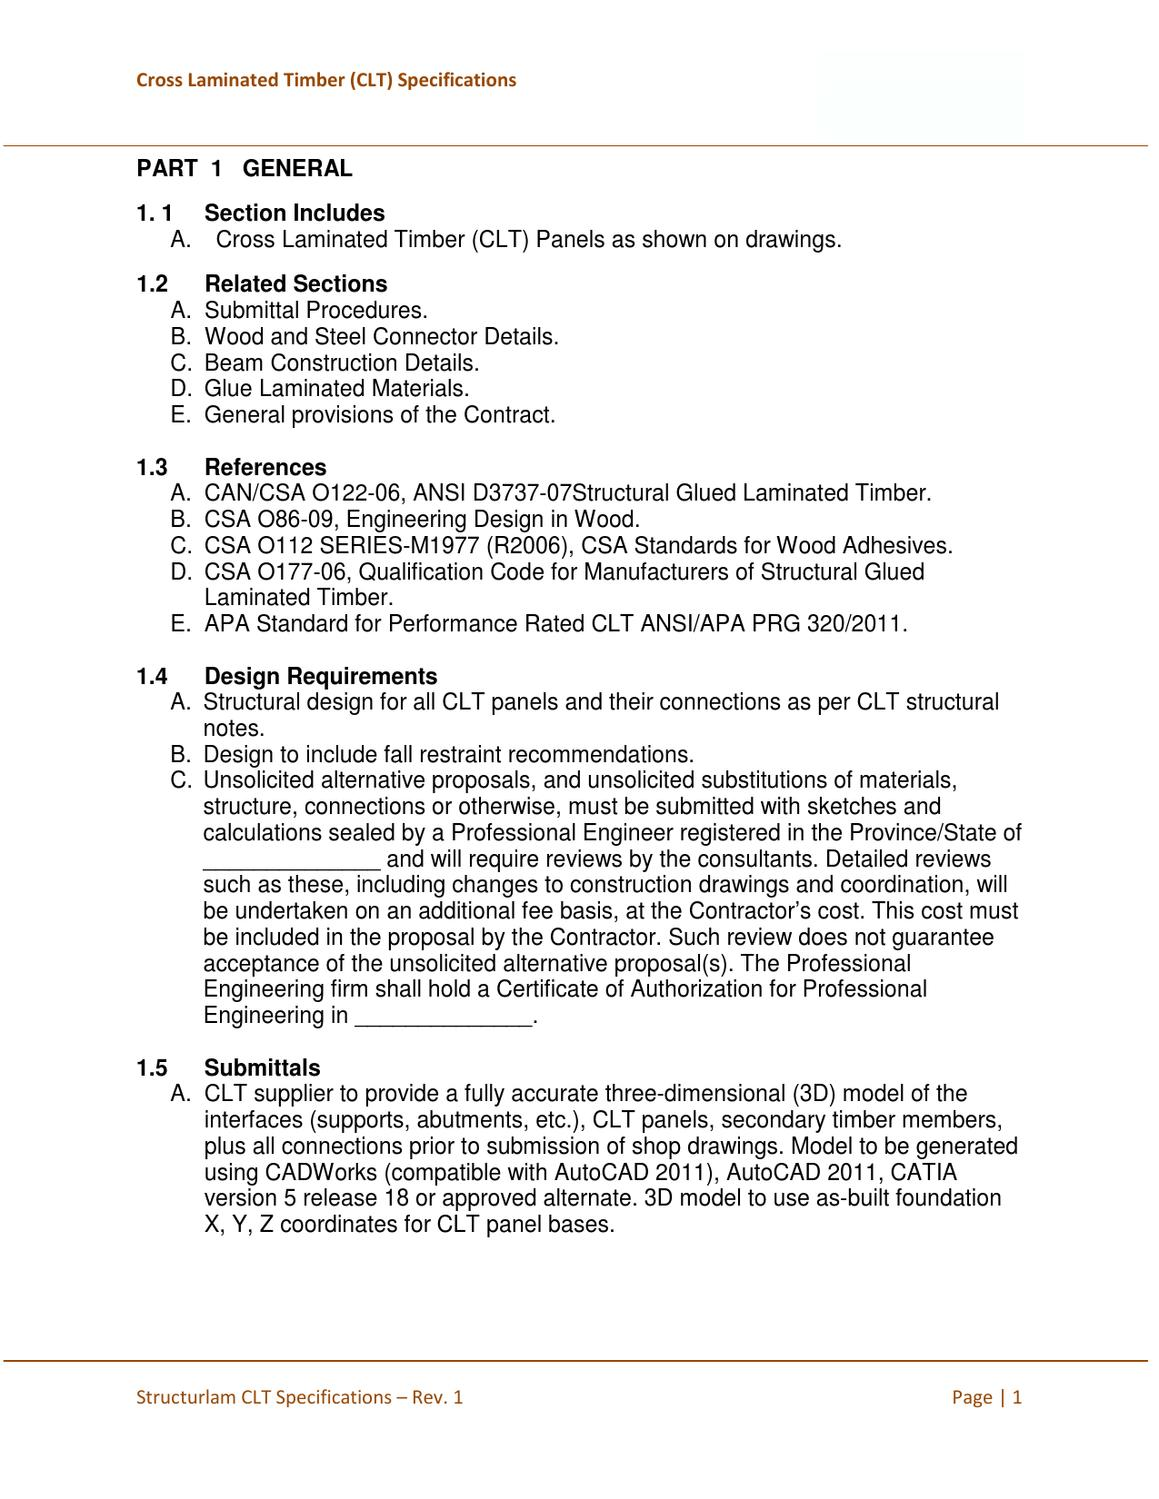 Clt Specifications By Stephen Tolnai Issuu